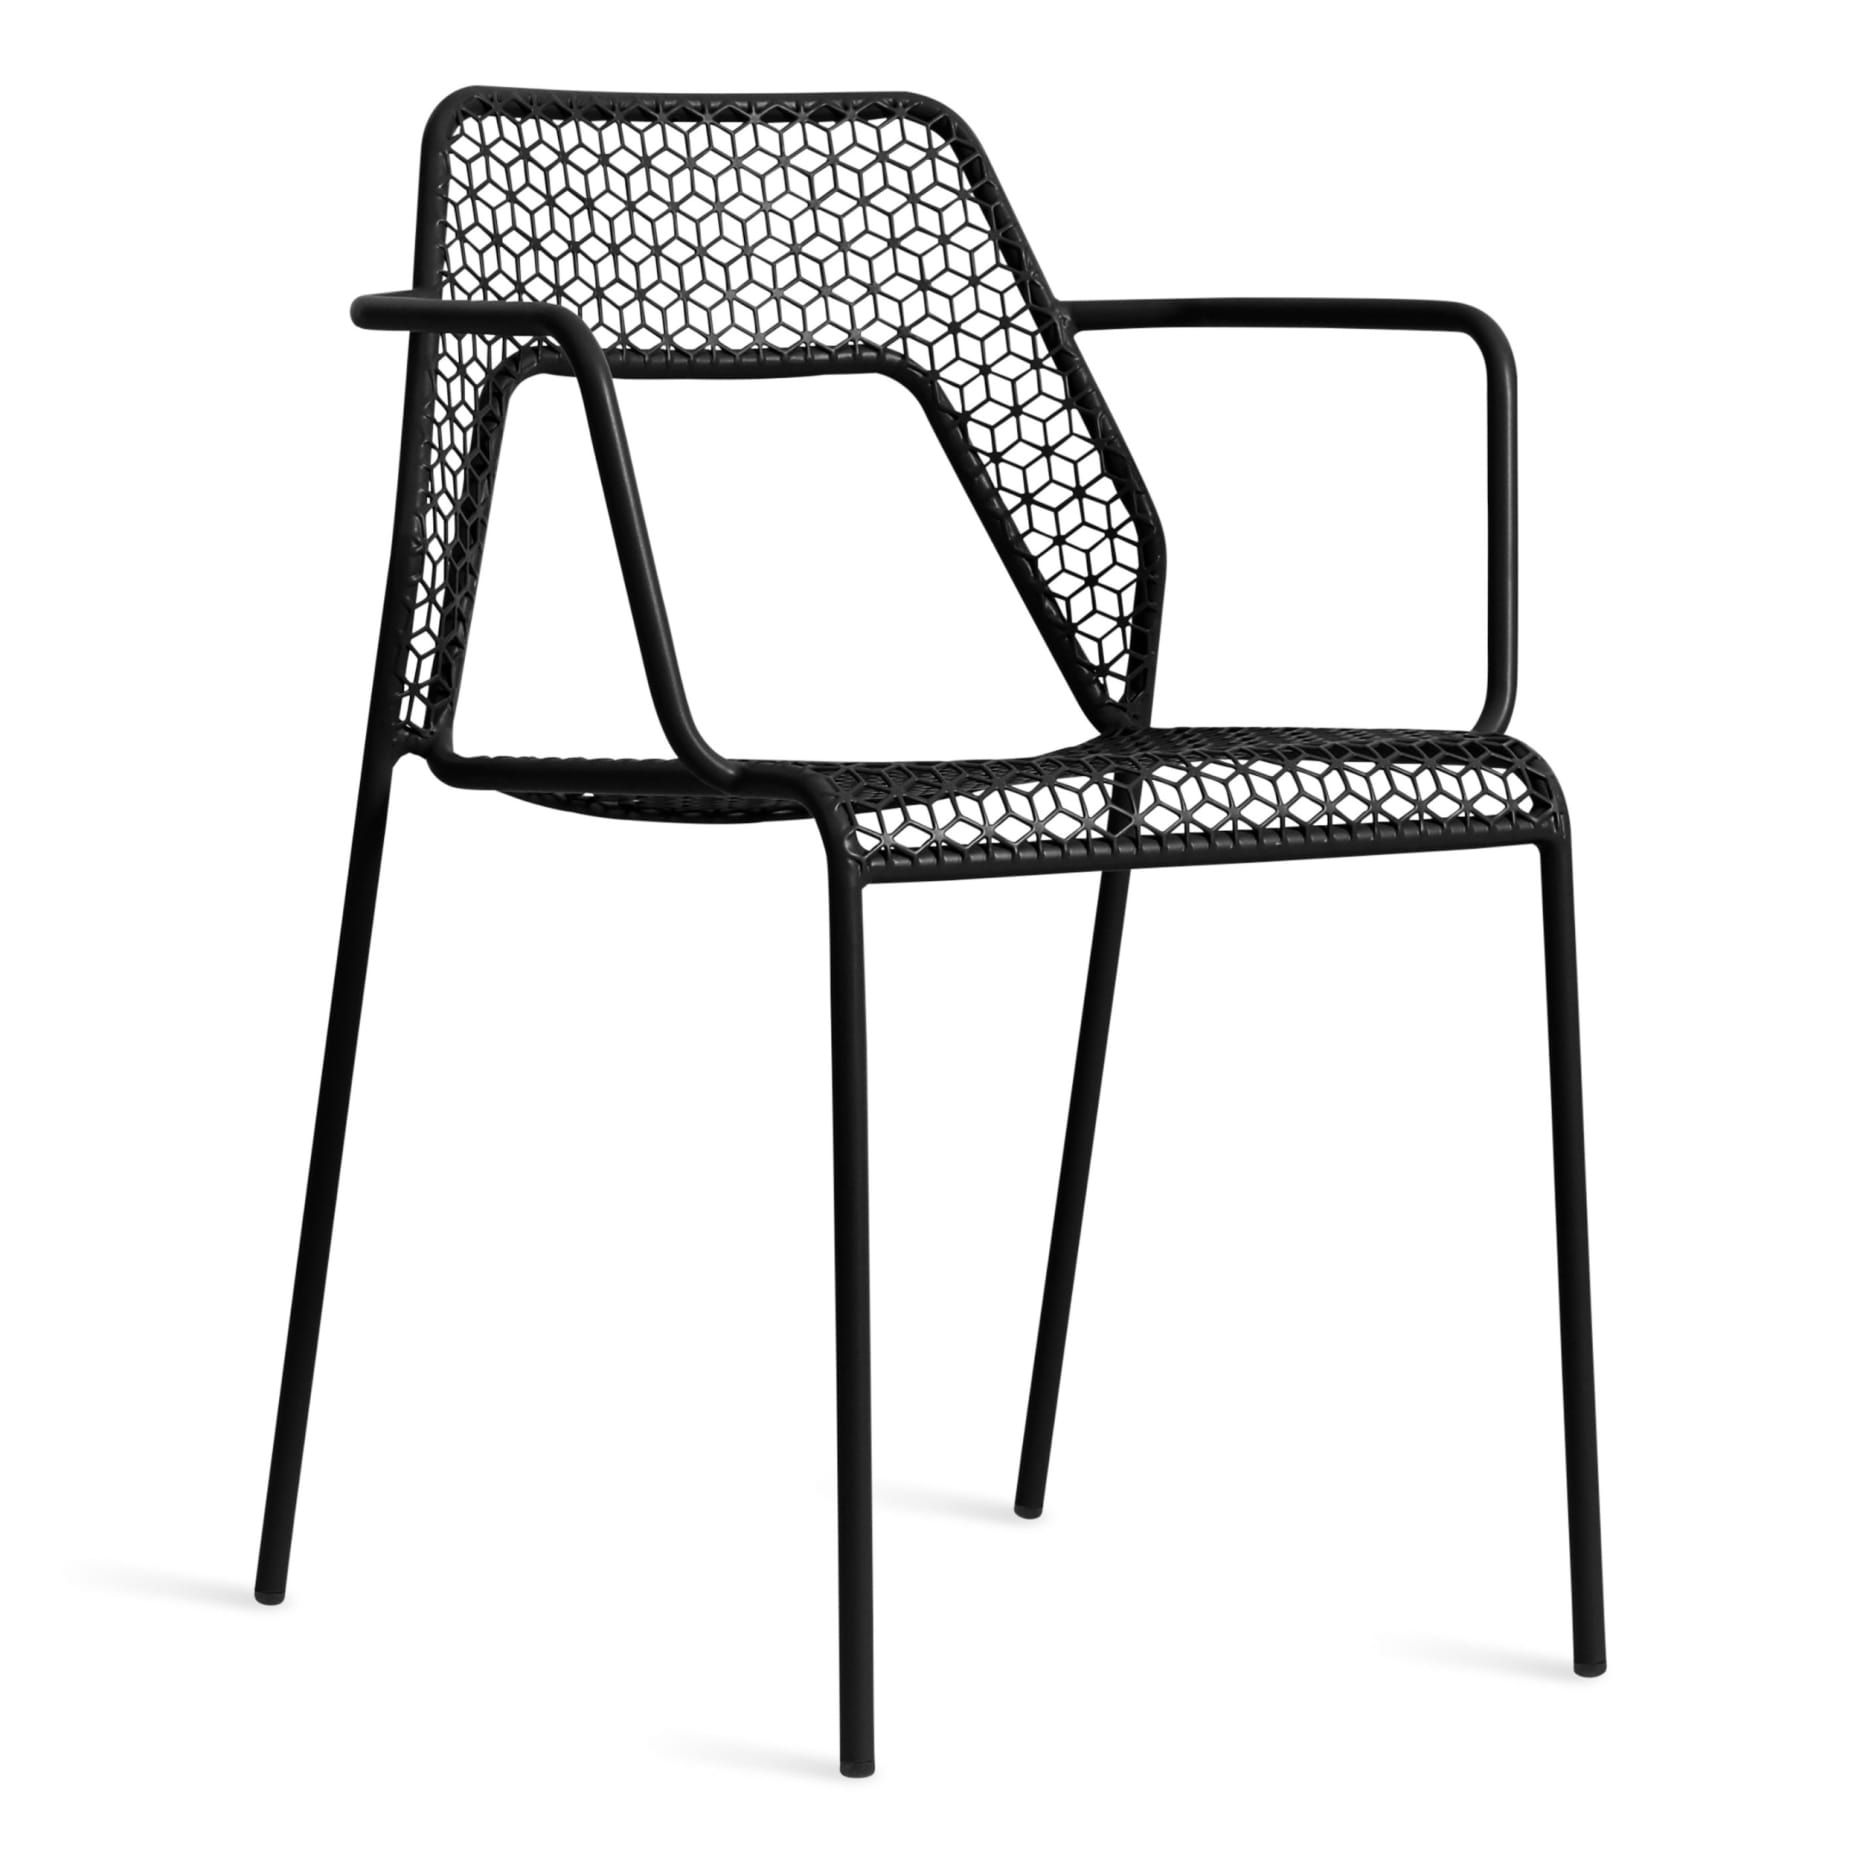 Hot mesh armchair in 2020 modern outdoor seating chair